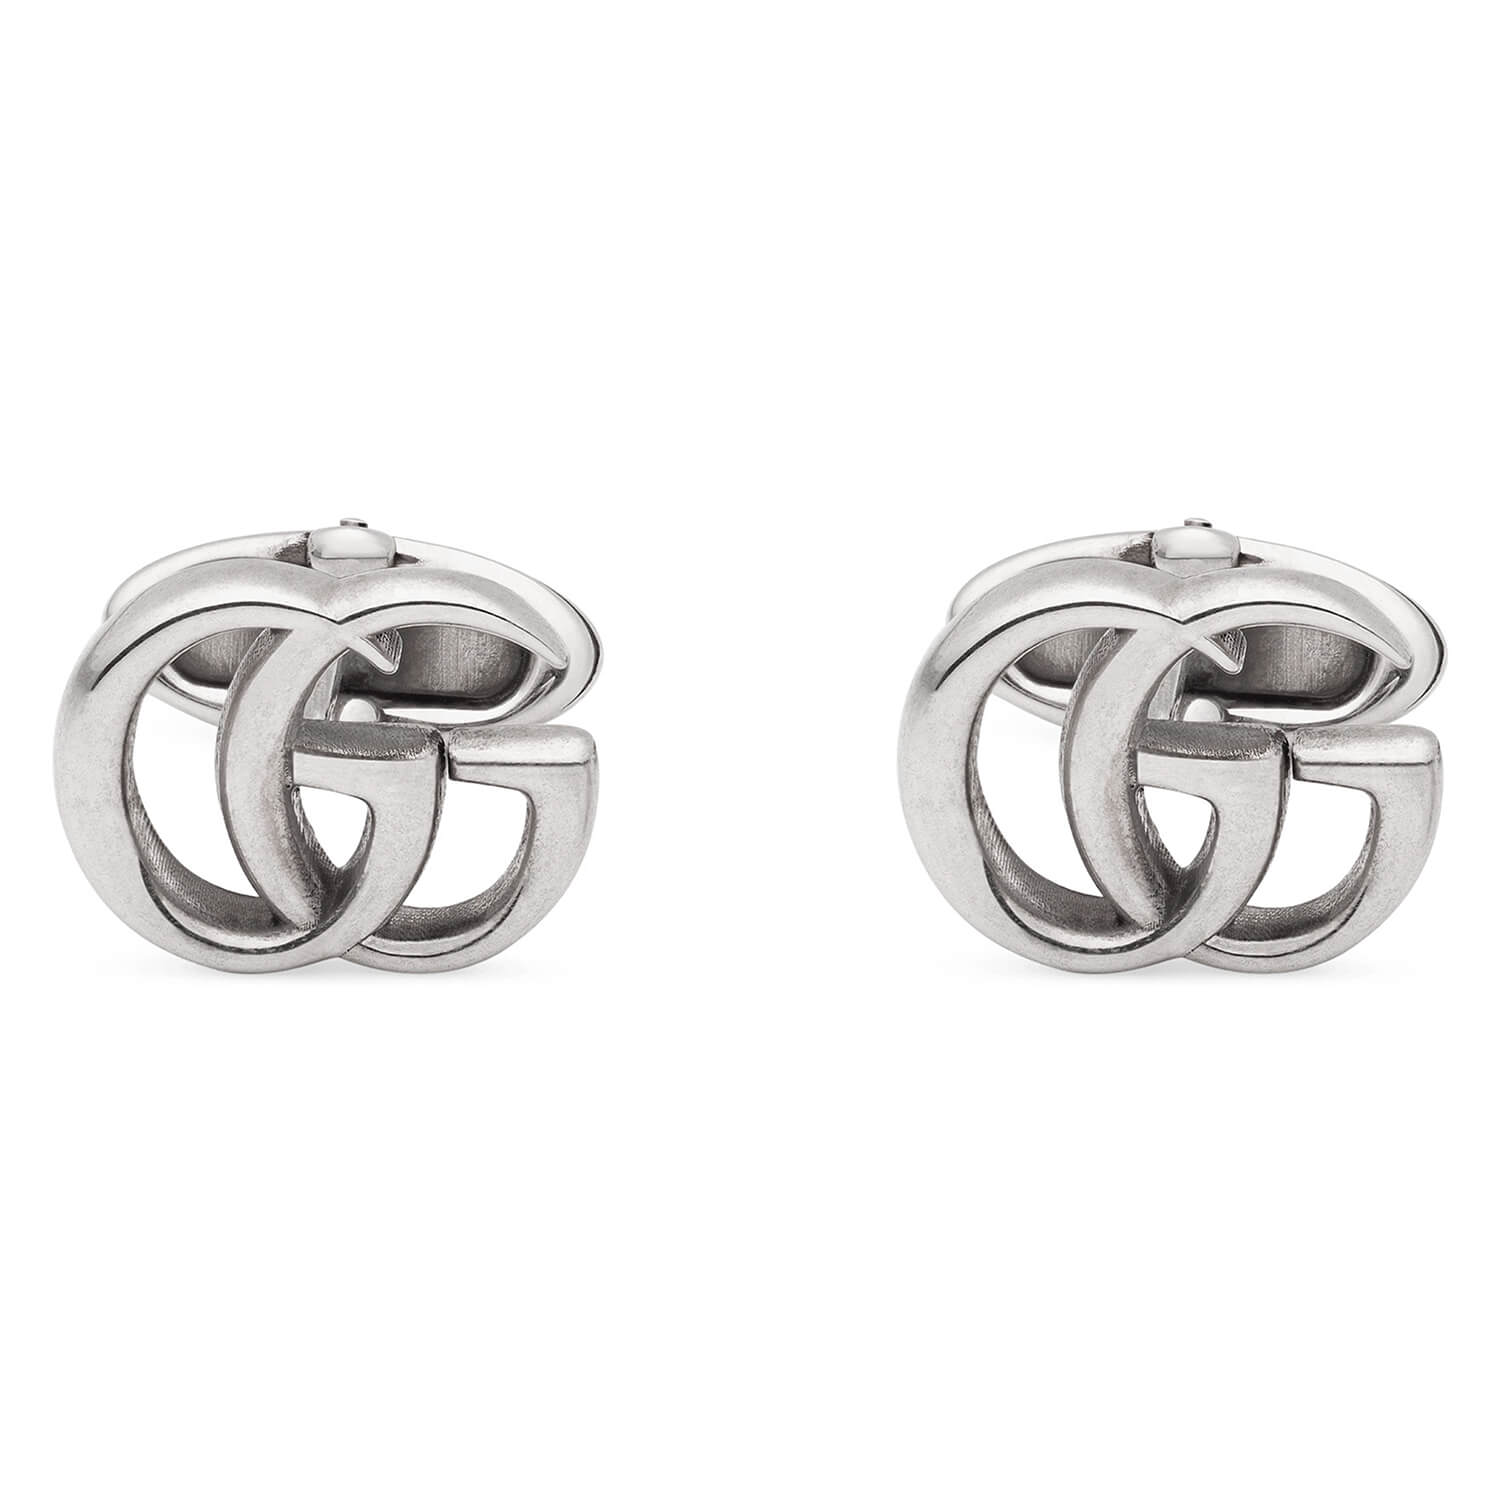 Gucci Marmont Double G Motif Stirling Silver Cufflinks